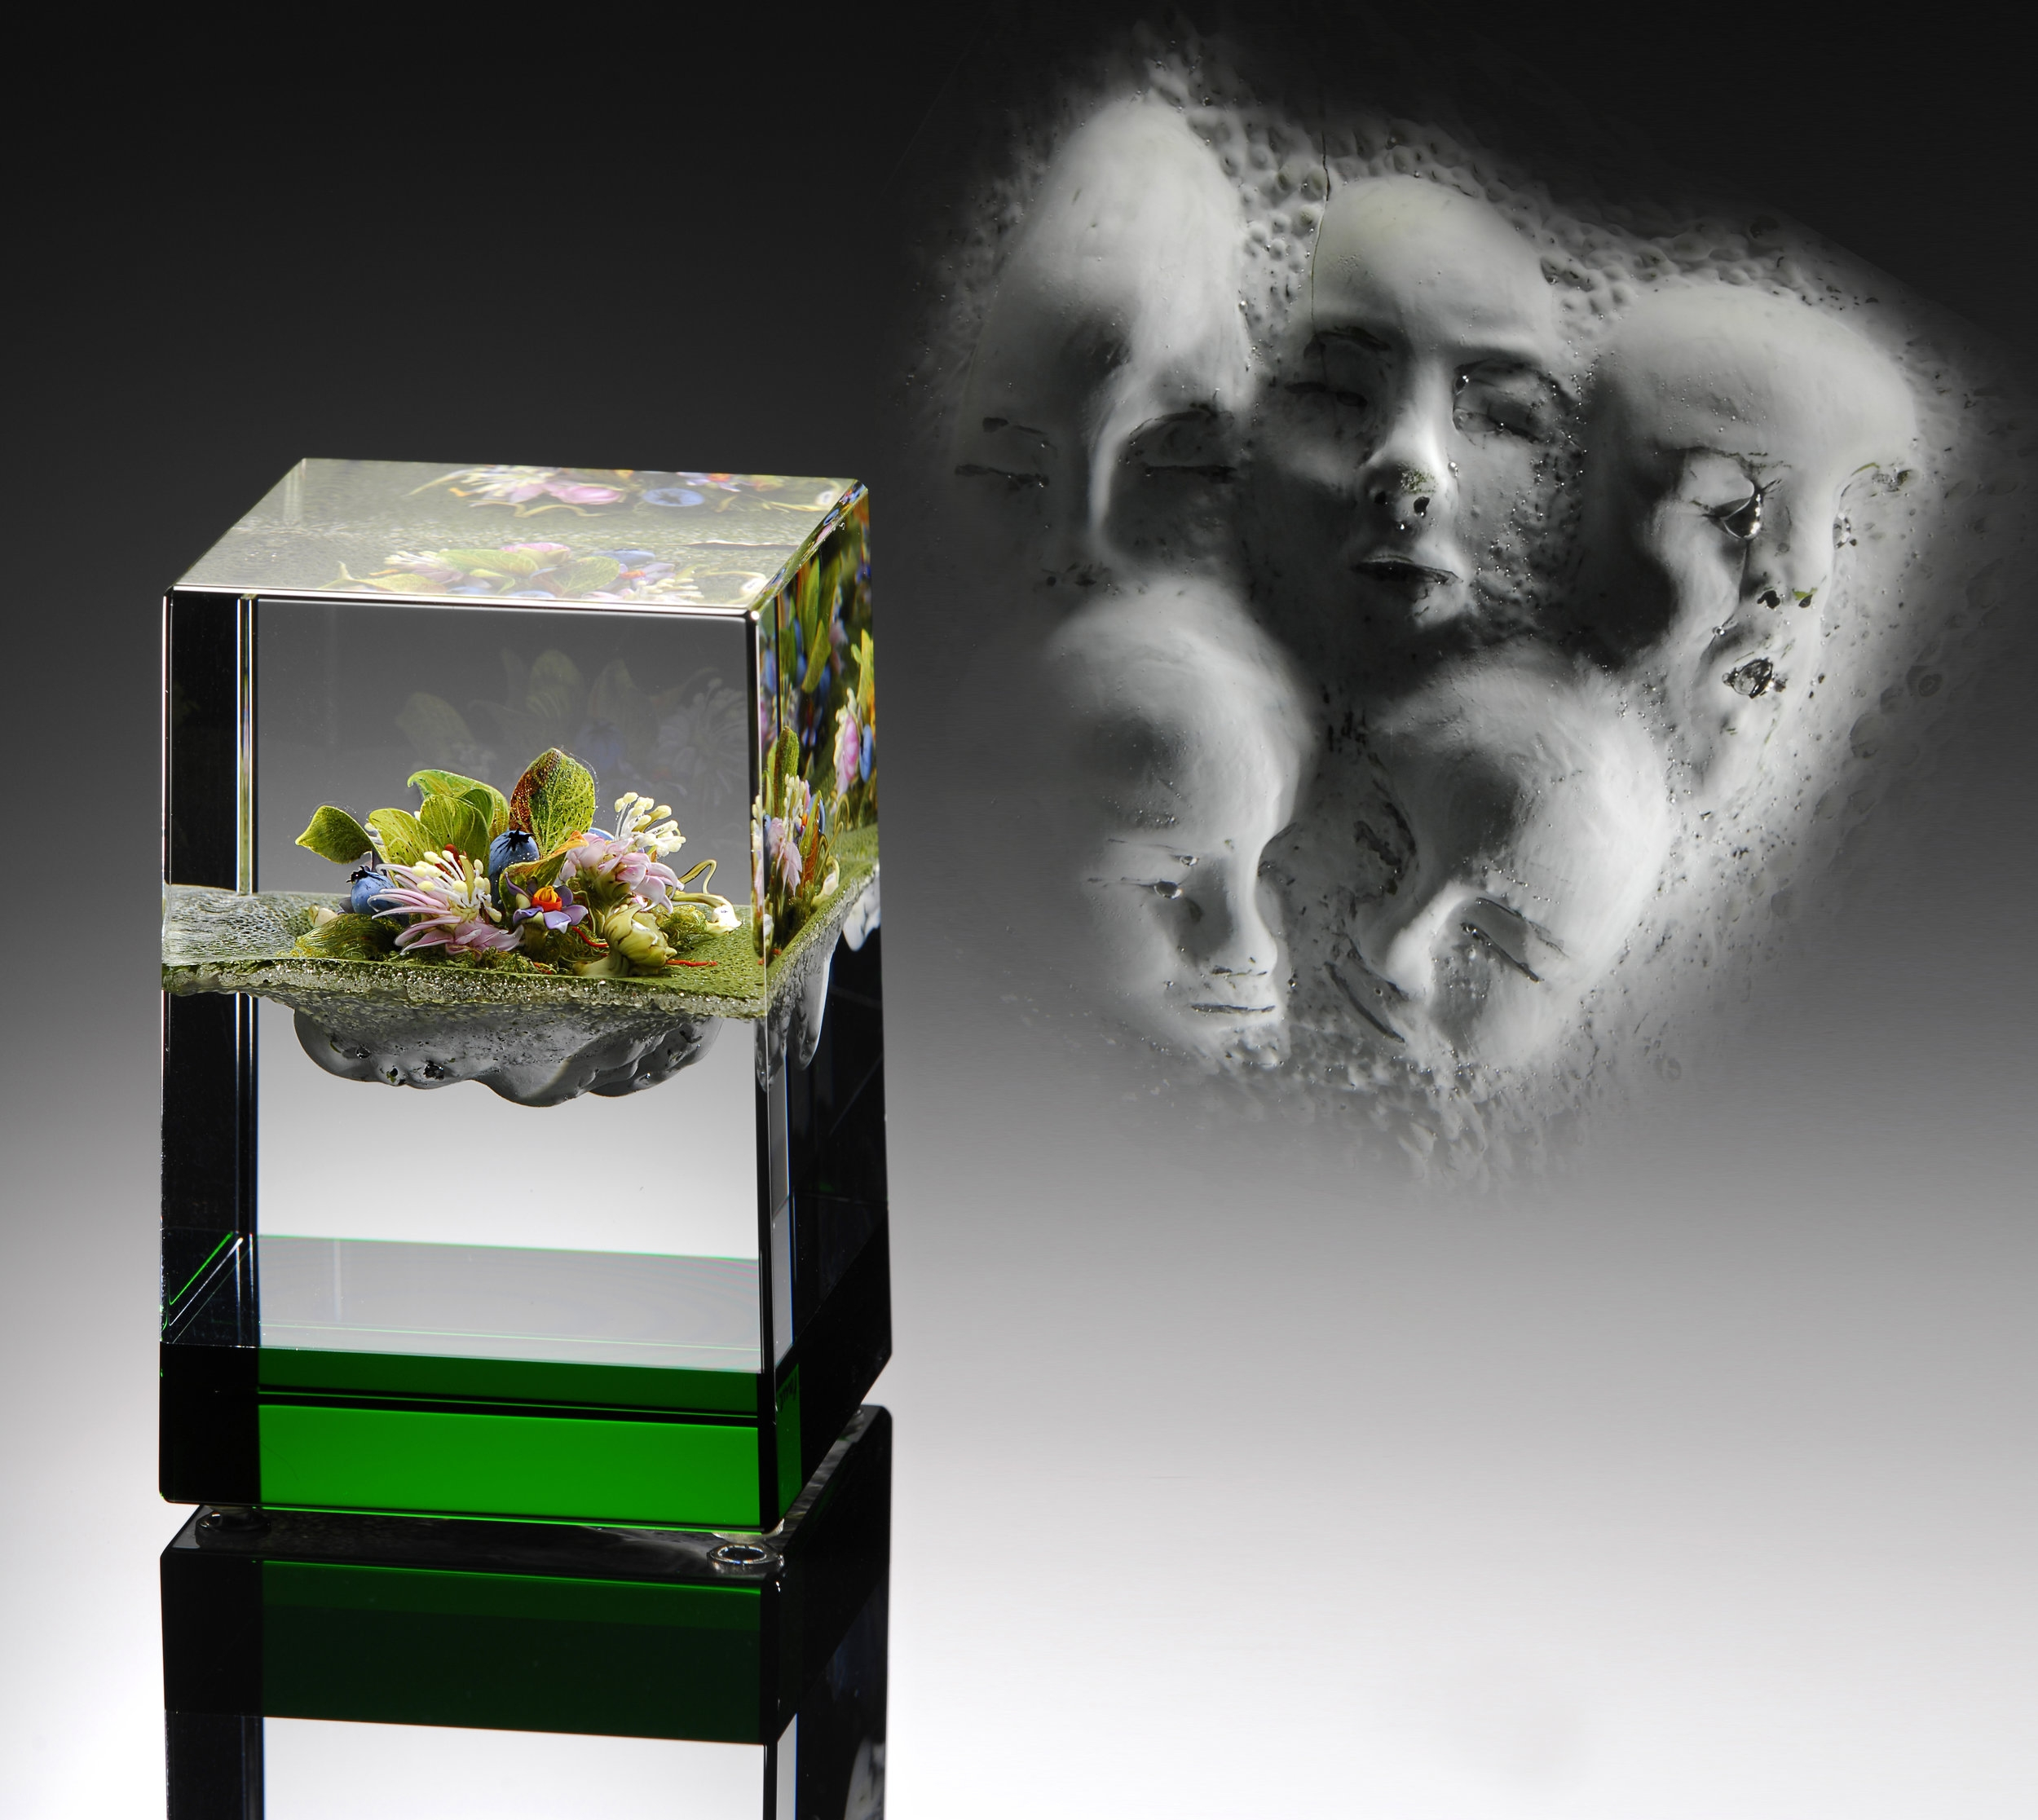 2003; Green-Banded Bouquet Cube with Masks and Pineland Flowers; H. 3 7/8 inches x W. 2 5/8 inches x D. 2 5/8 inches